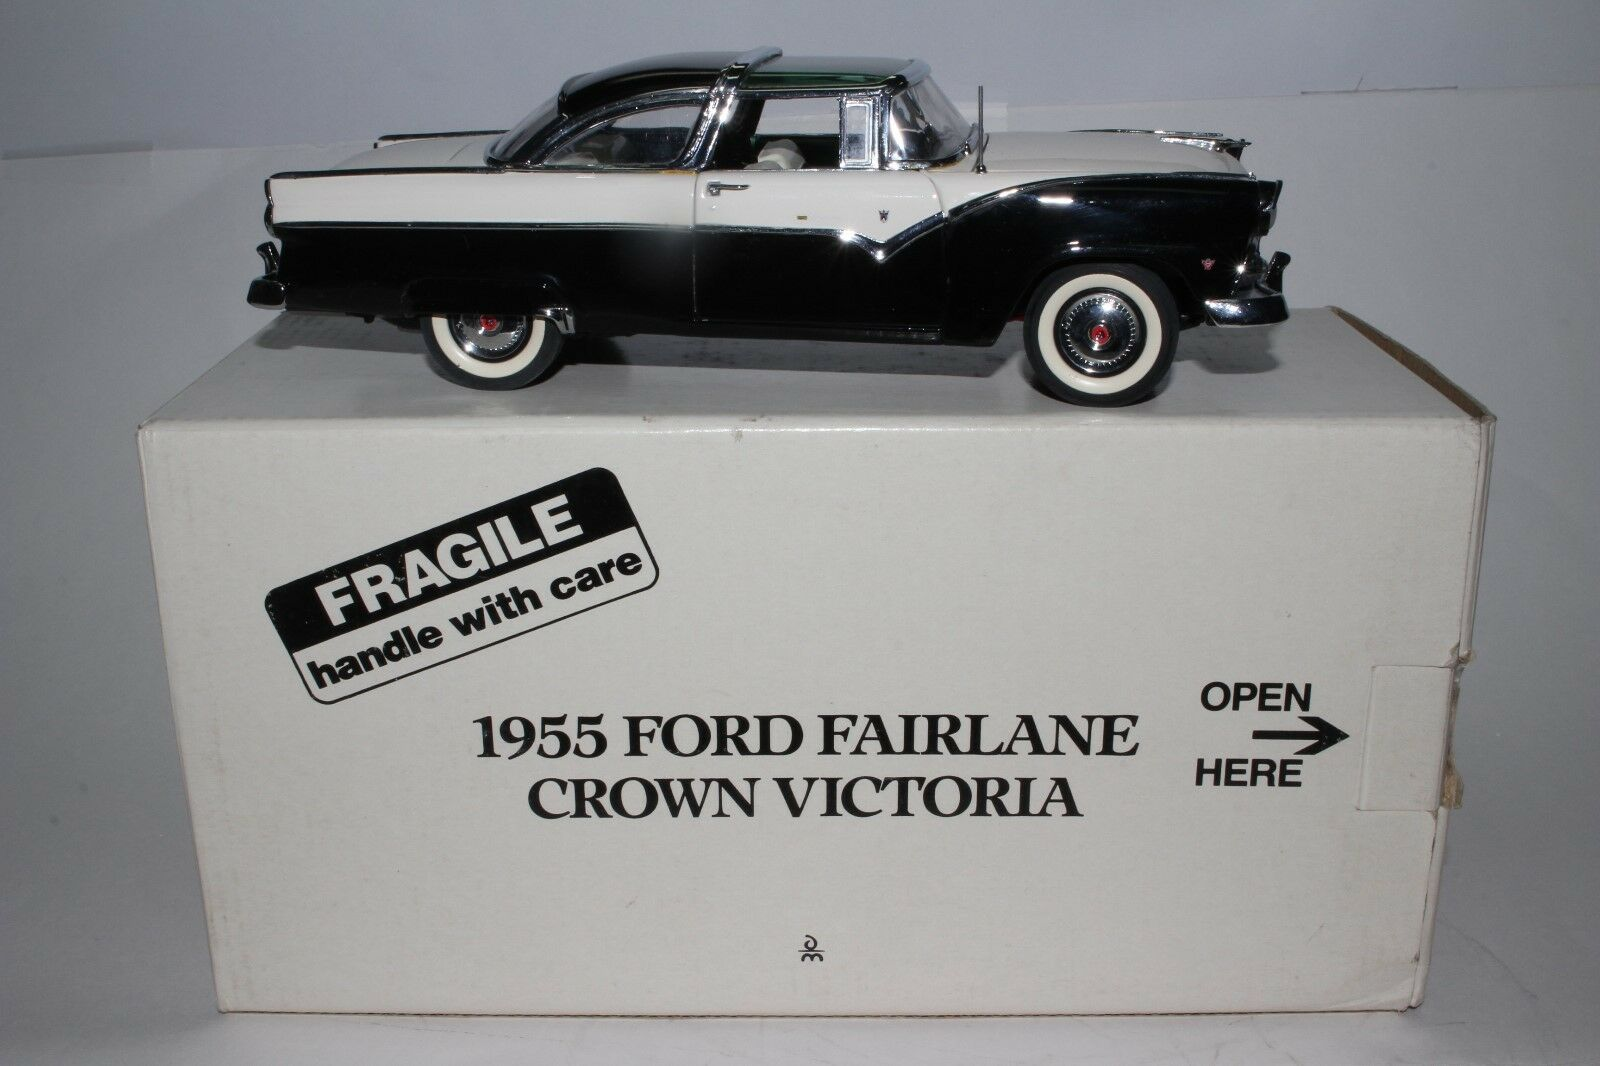 1955 Ford Fairlane Crown Victoria, Danbury Mint de Metal 1 24 Buen Estado